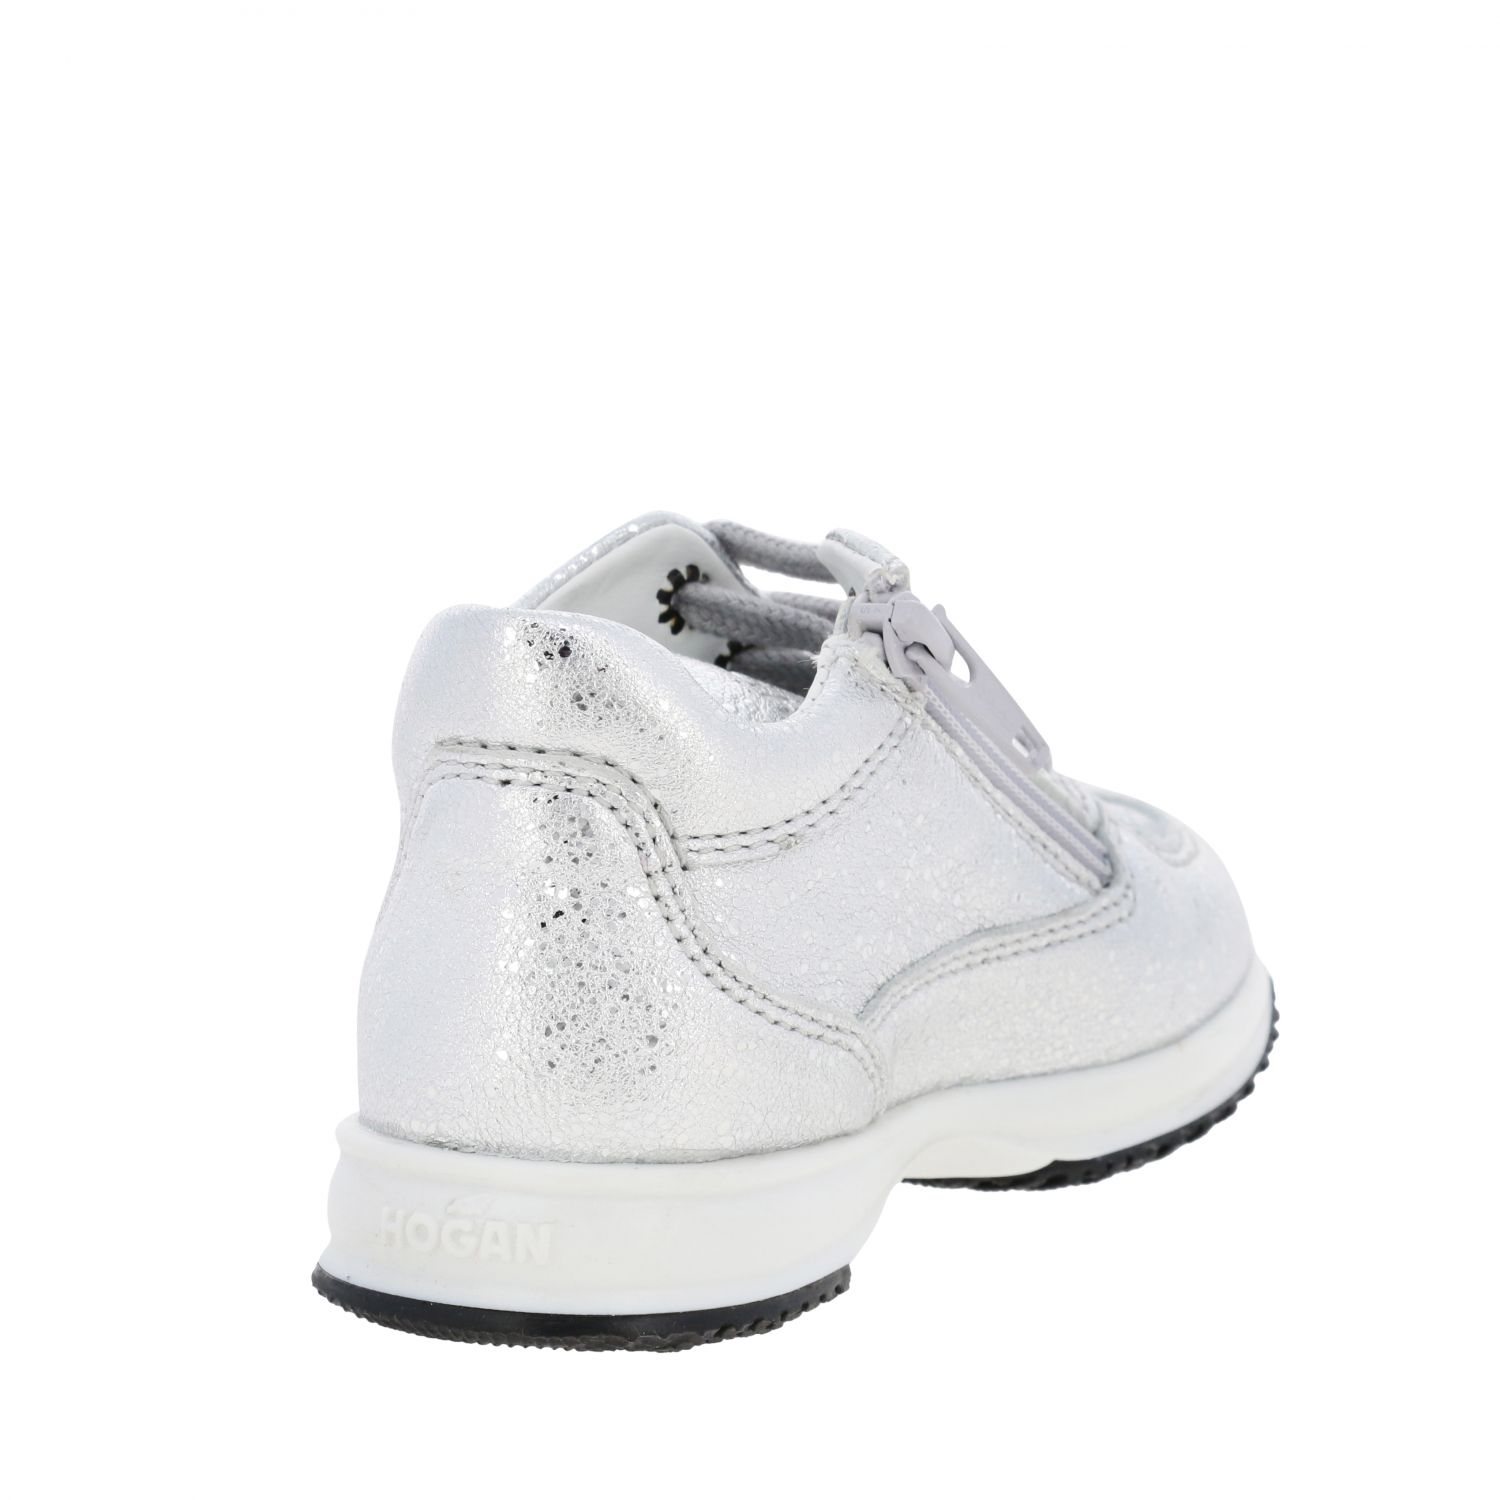 Shoes Hogan Baby: Shoes kids Hogan Baby silver 5